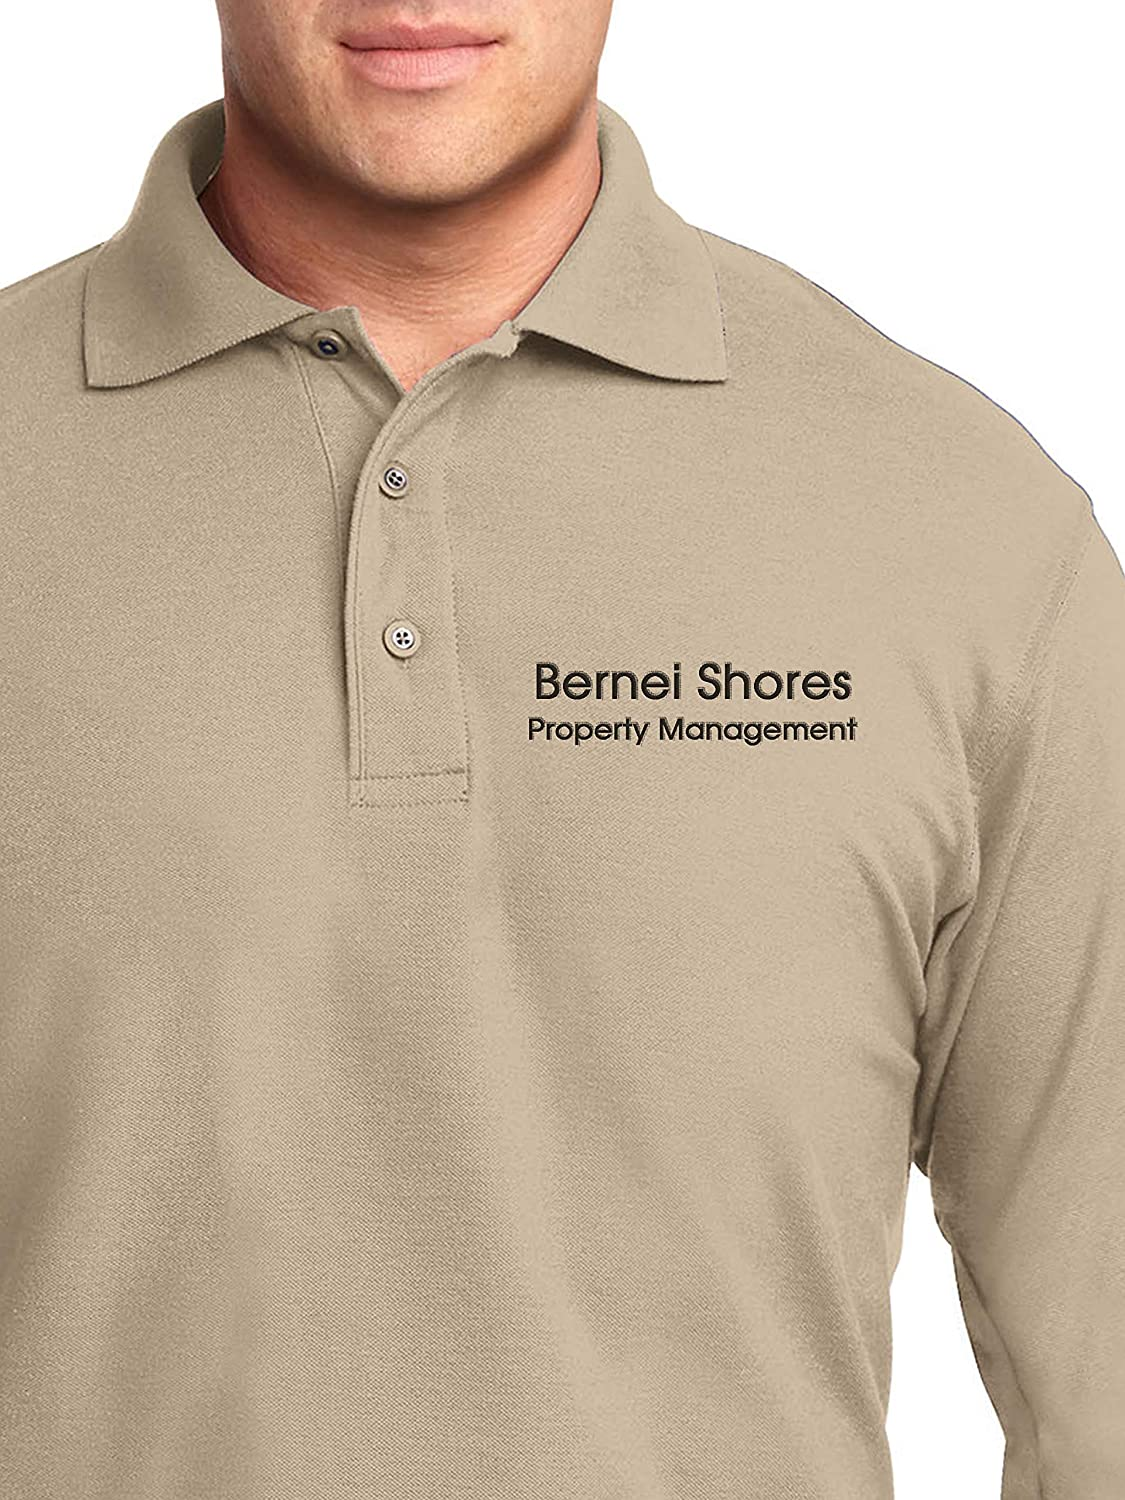 Custom Embroidered Mens Long Sleeve Polo Shirts - Personalized Embroidery Polo Tees